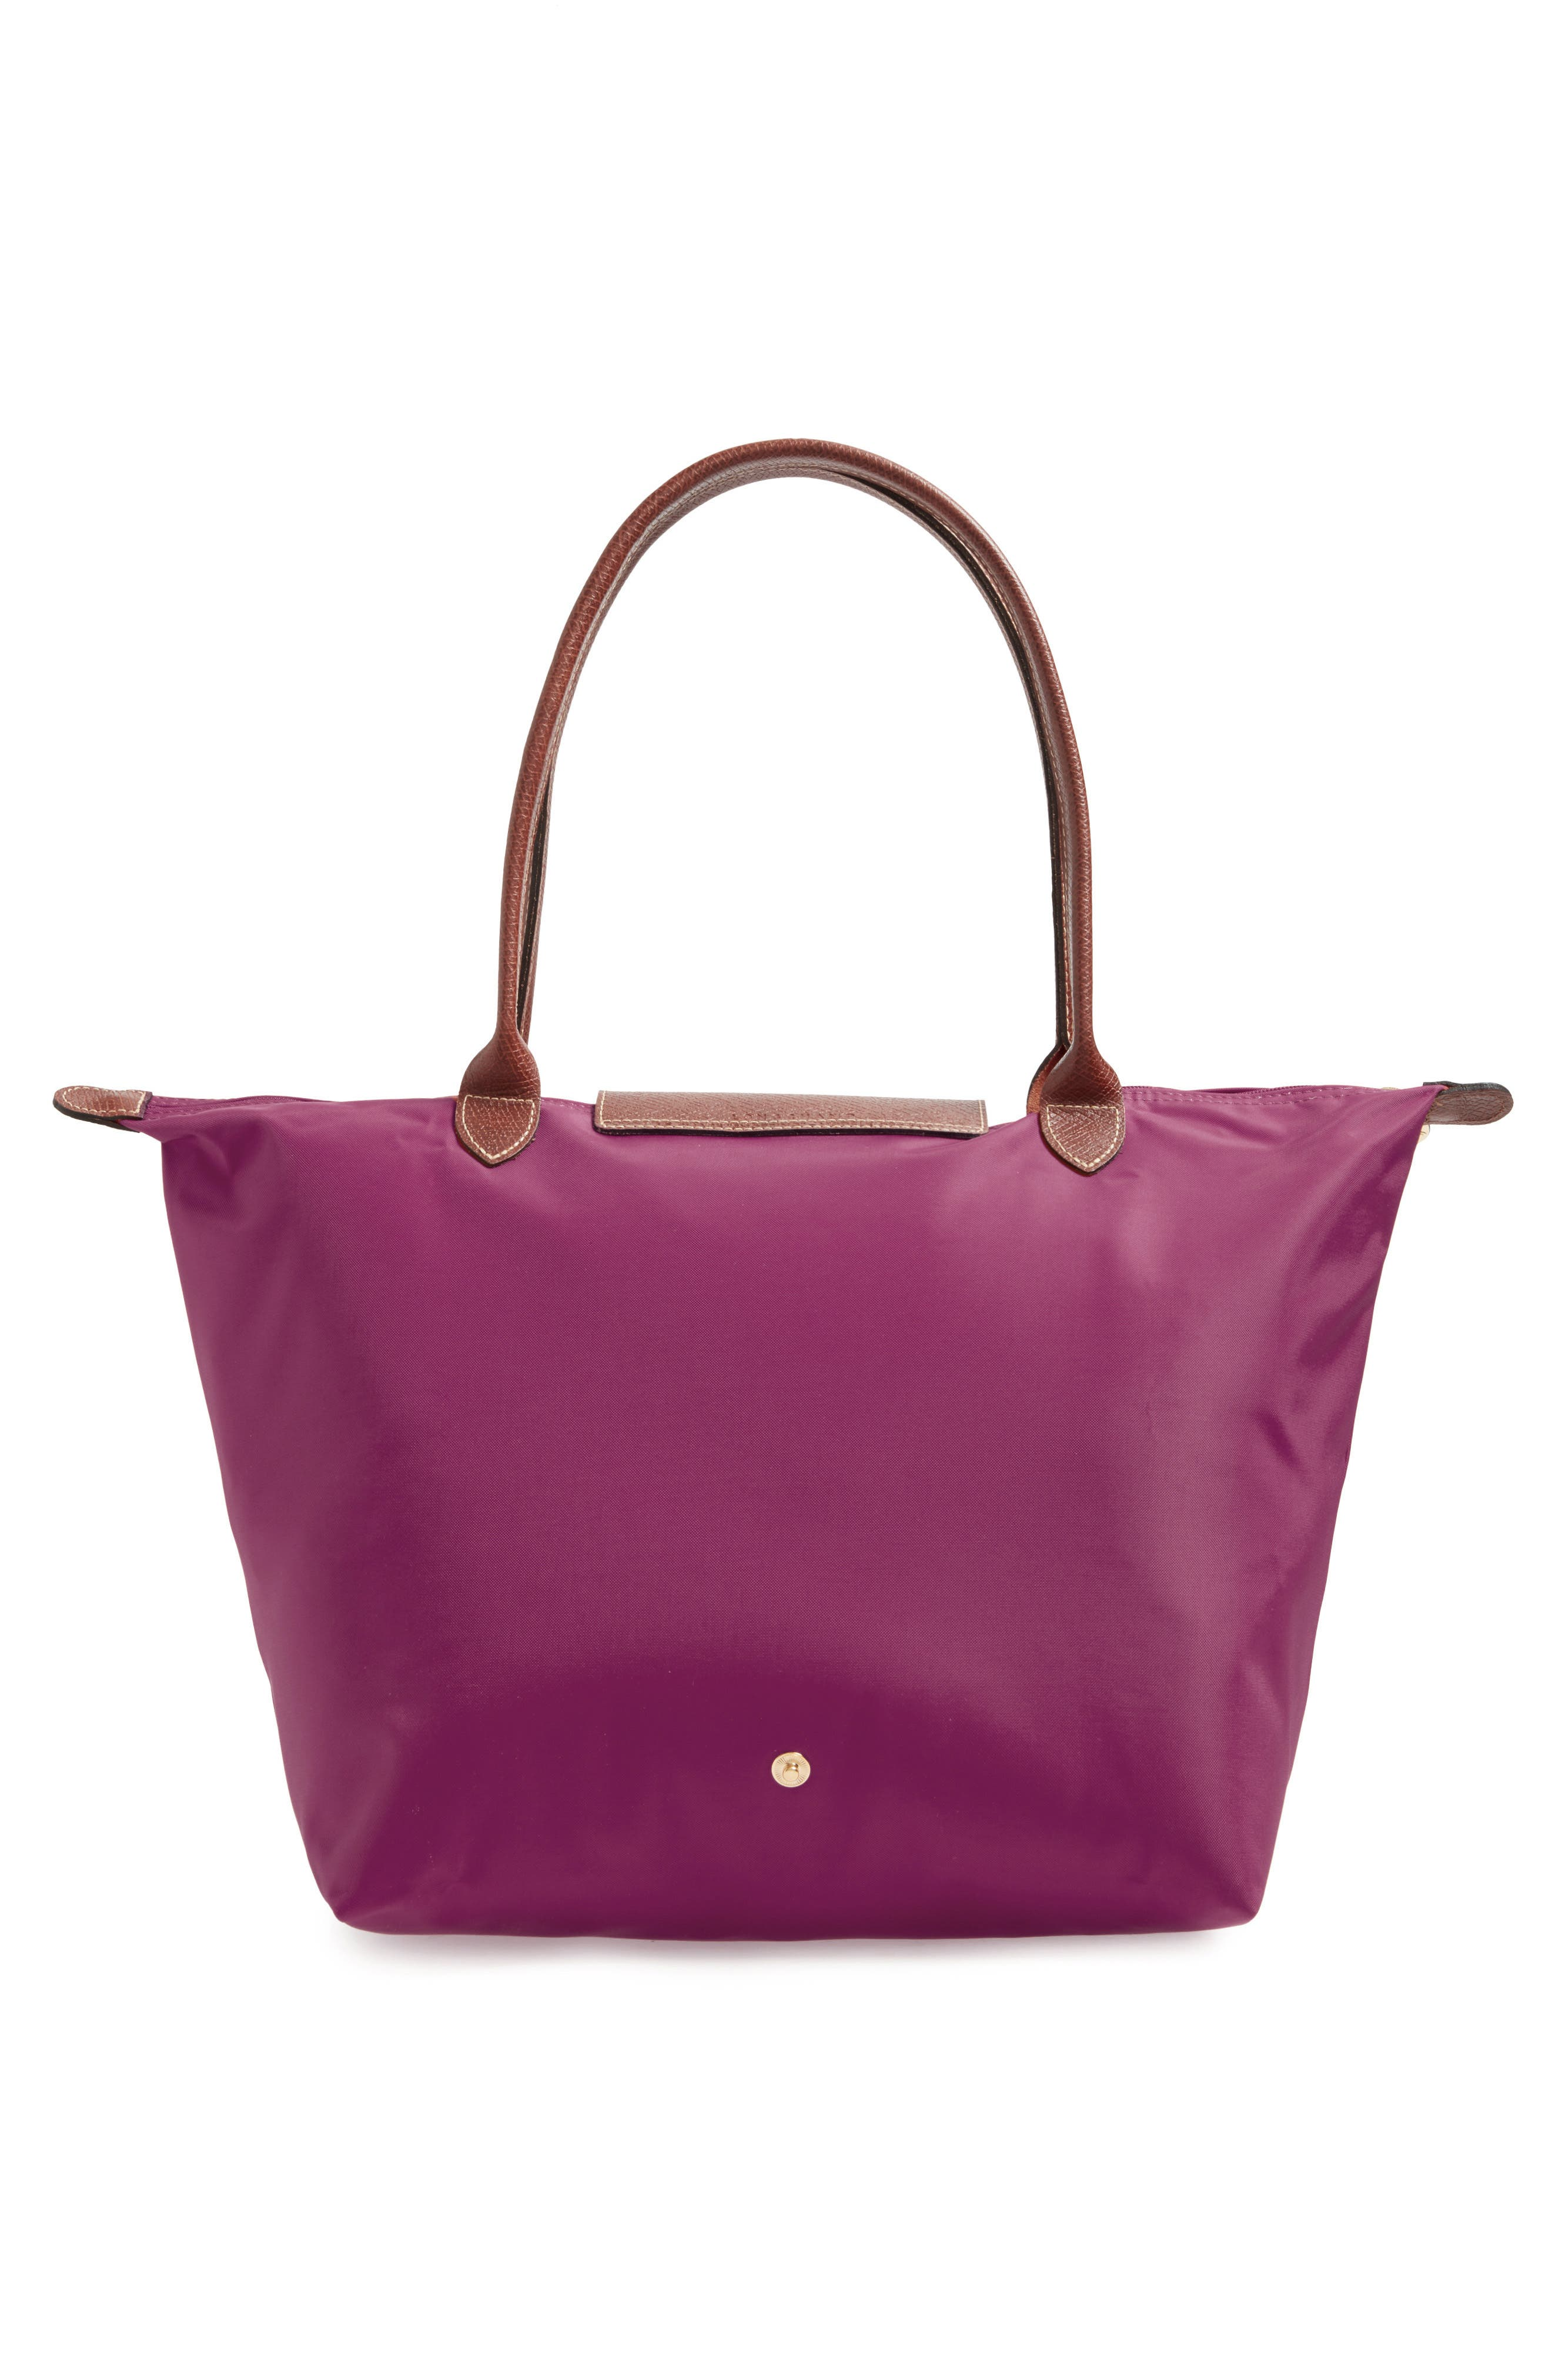 'Large Le Pliage' Tote,                             Alternate thumbnail 3, color,                             DAHLIA